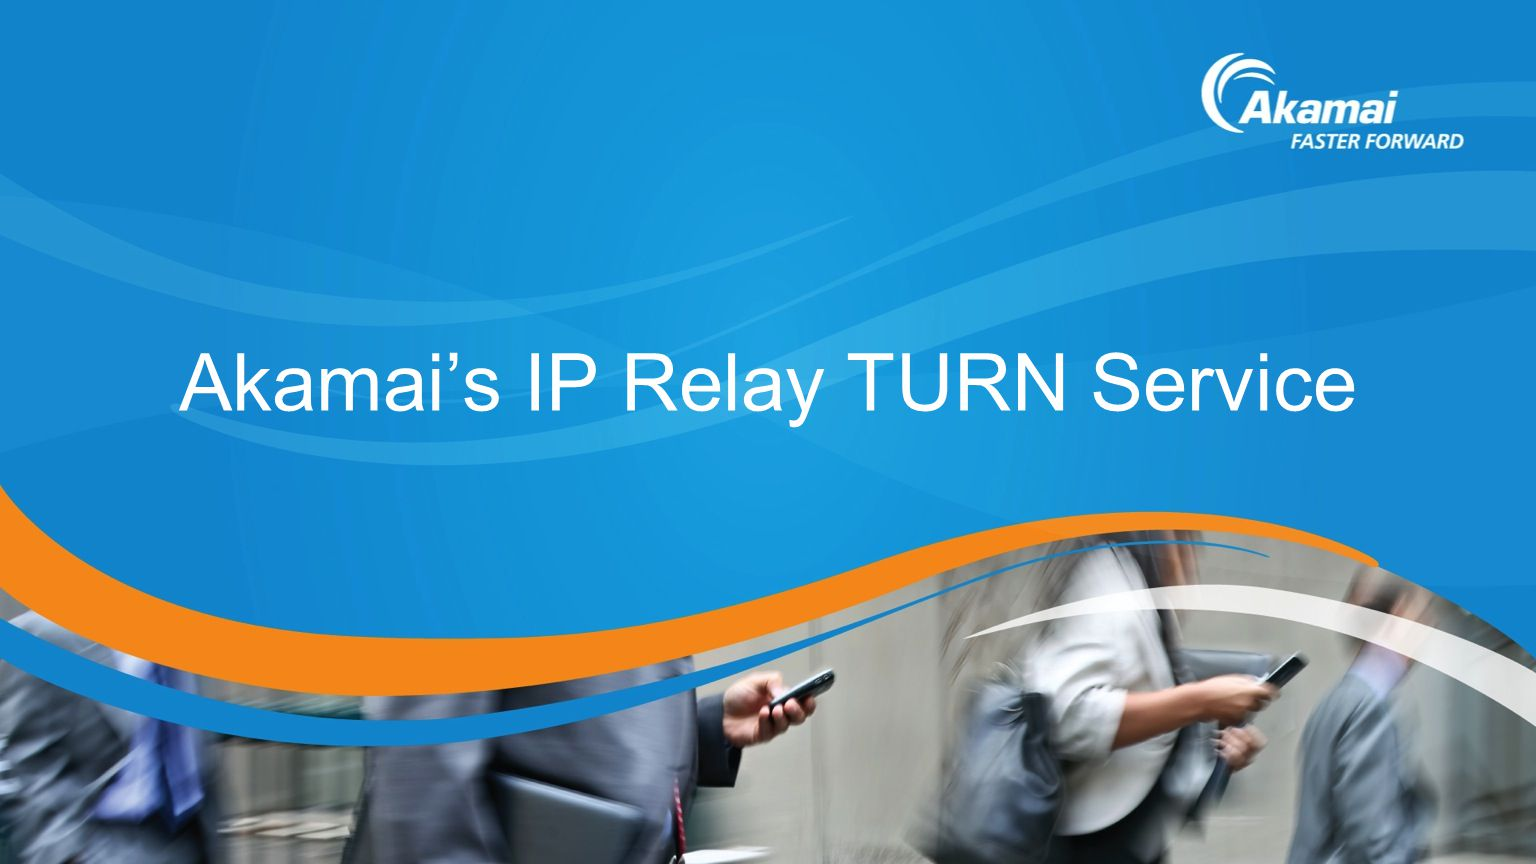 Akamai's IP Relay TURN Service